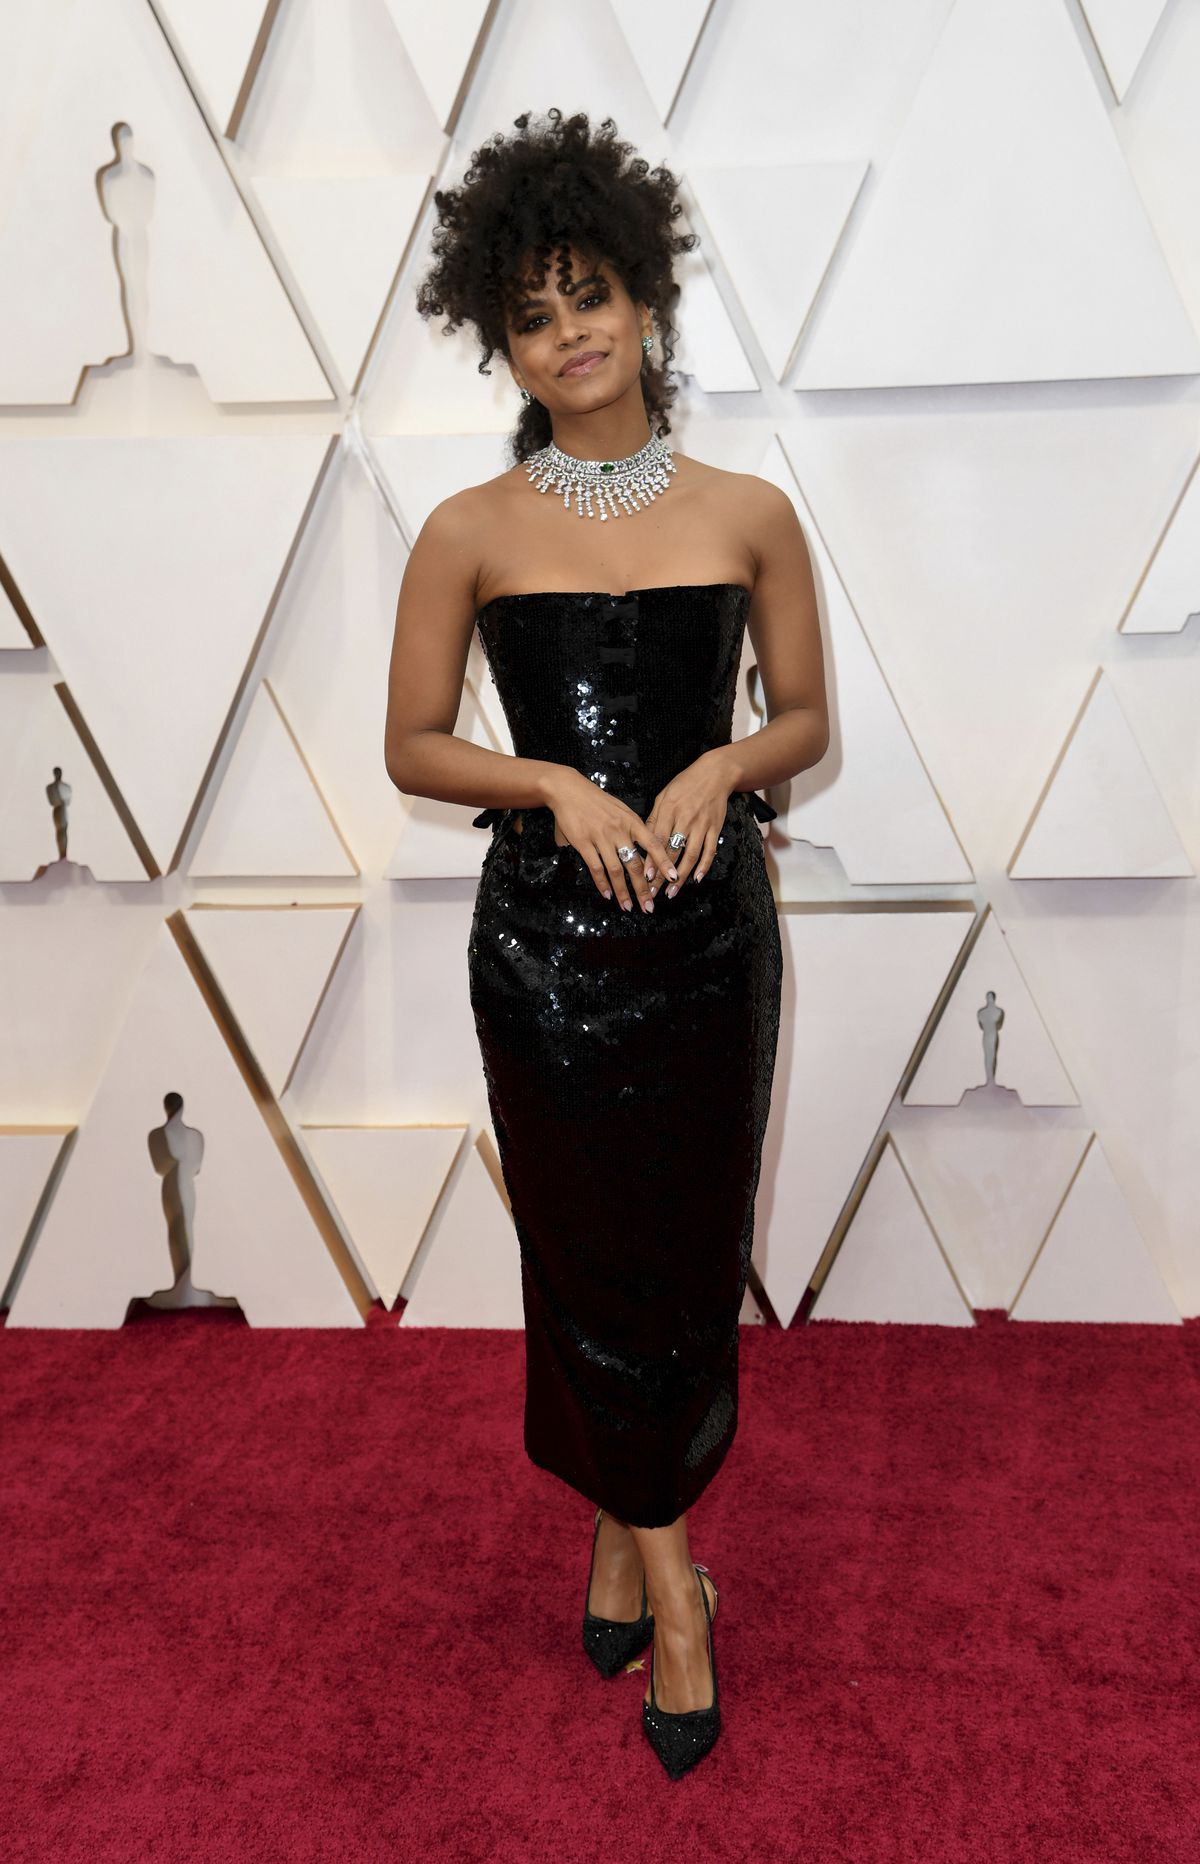 """Zazie Beetz, co-star in the Oscar-nominated """"Joker,"""" arrives at the Oscars on Sunday wearing Tom Ford couture."""